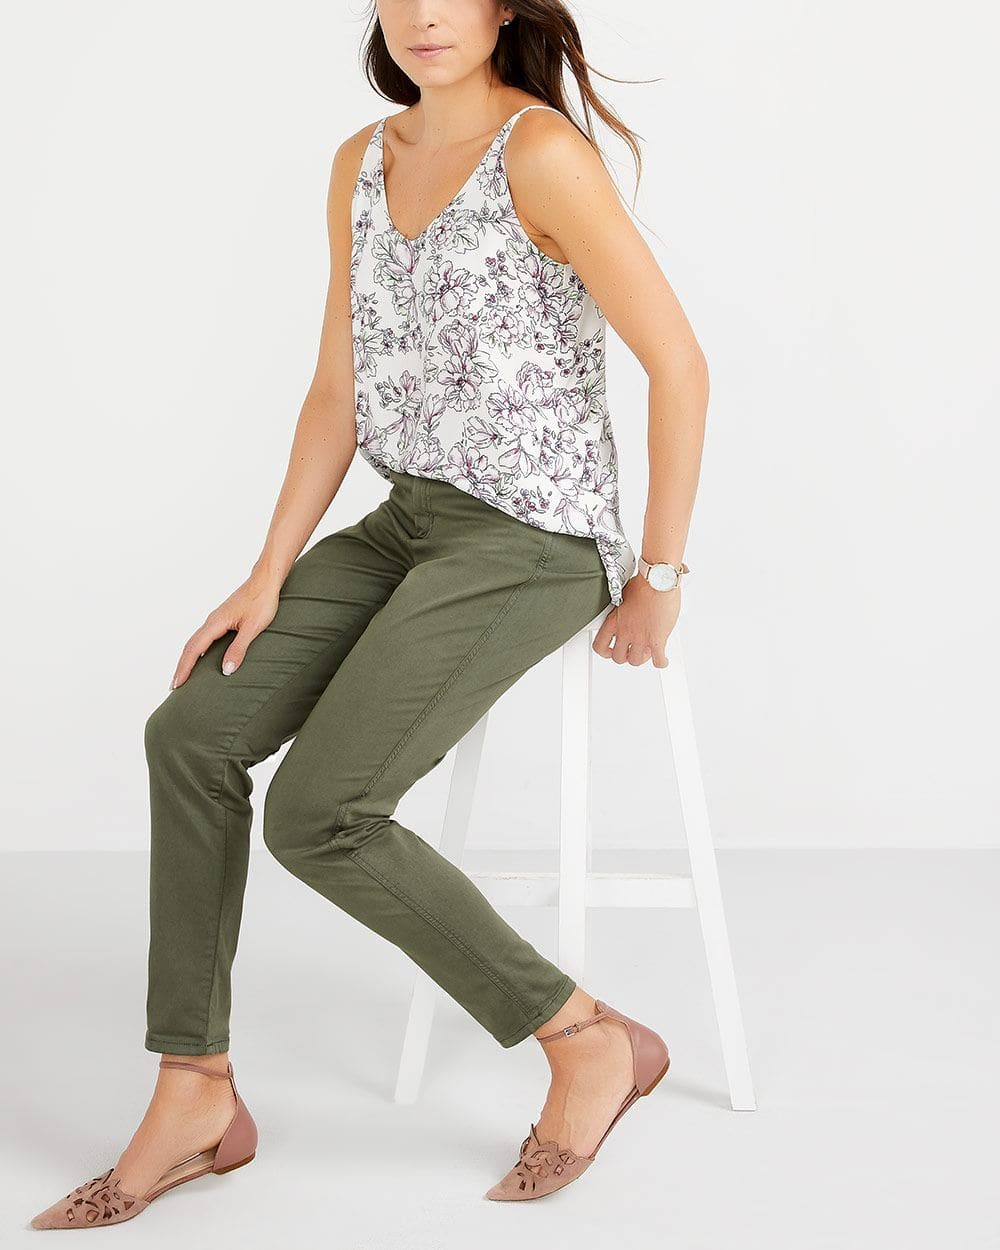 R Essentials Printed Urban Cami